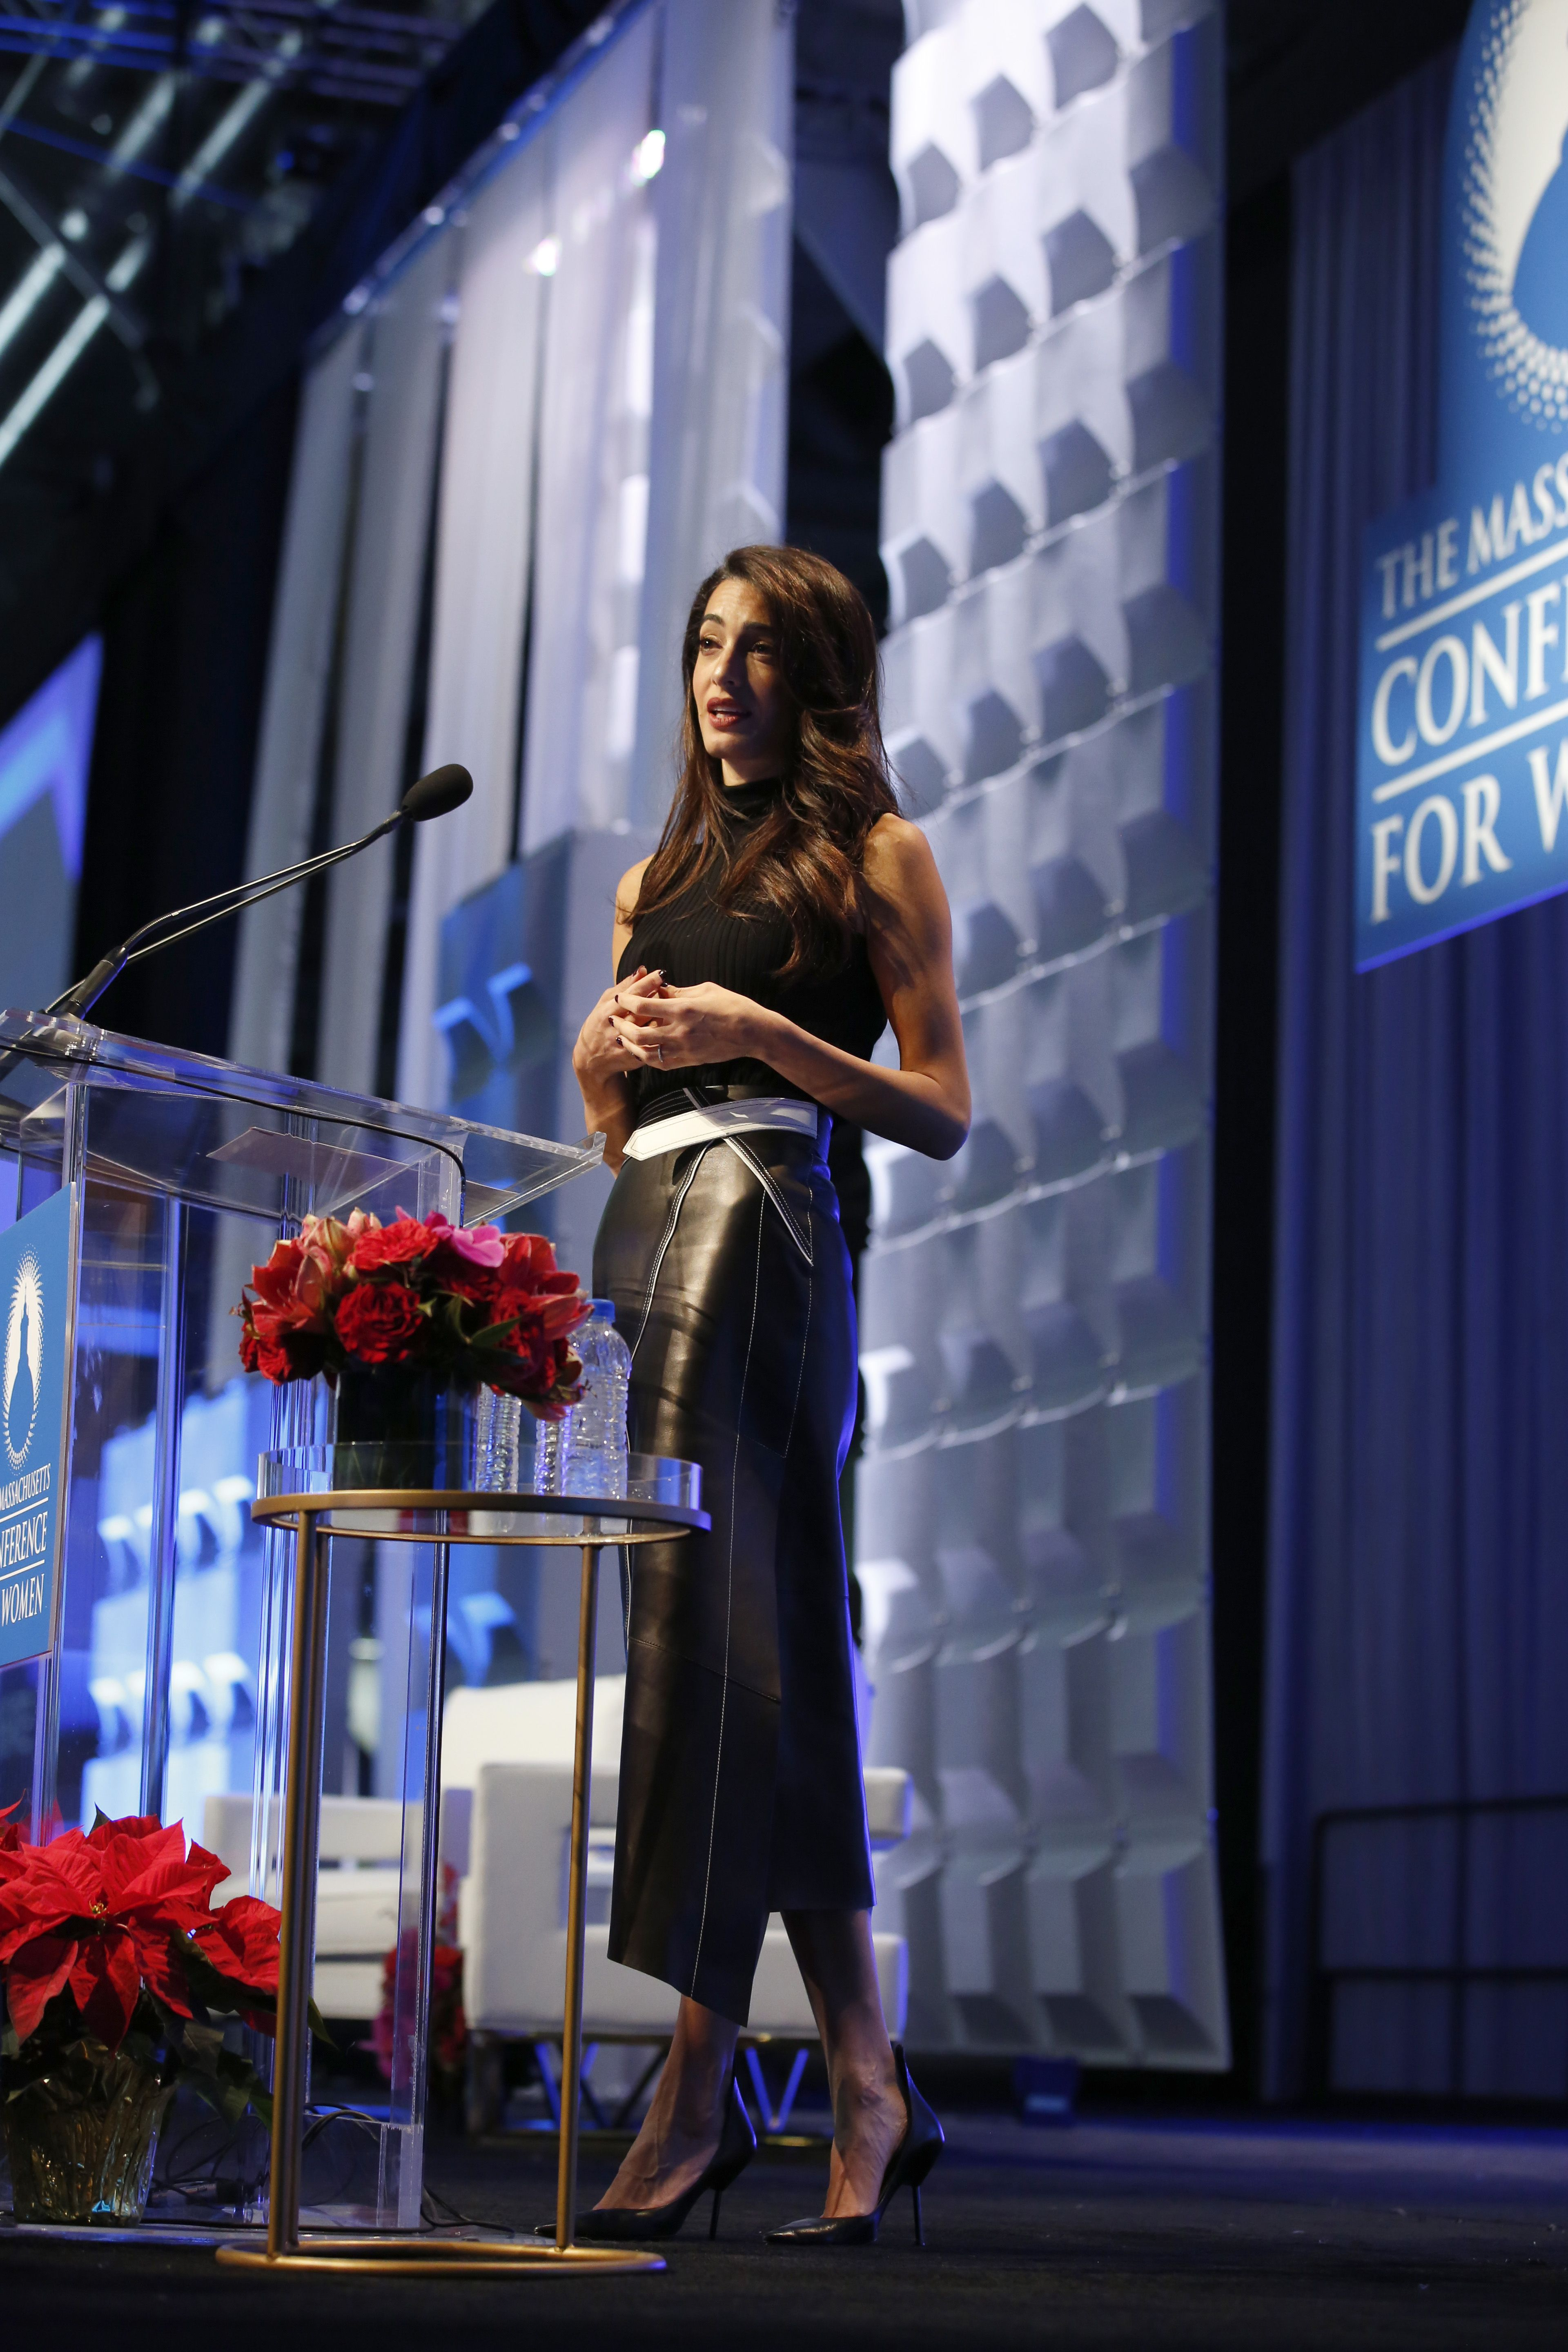 December 6, 2018 Speaking in a sleeveless turtleneck and long black leather skirt at the 2018 Massachusetts Conference For Women at the Boston Convention & Exhibition Center.